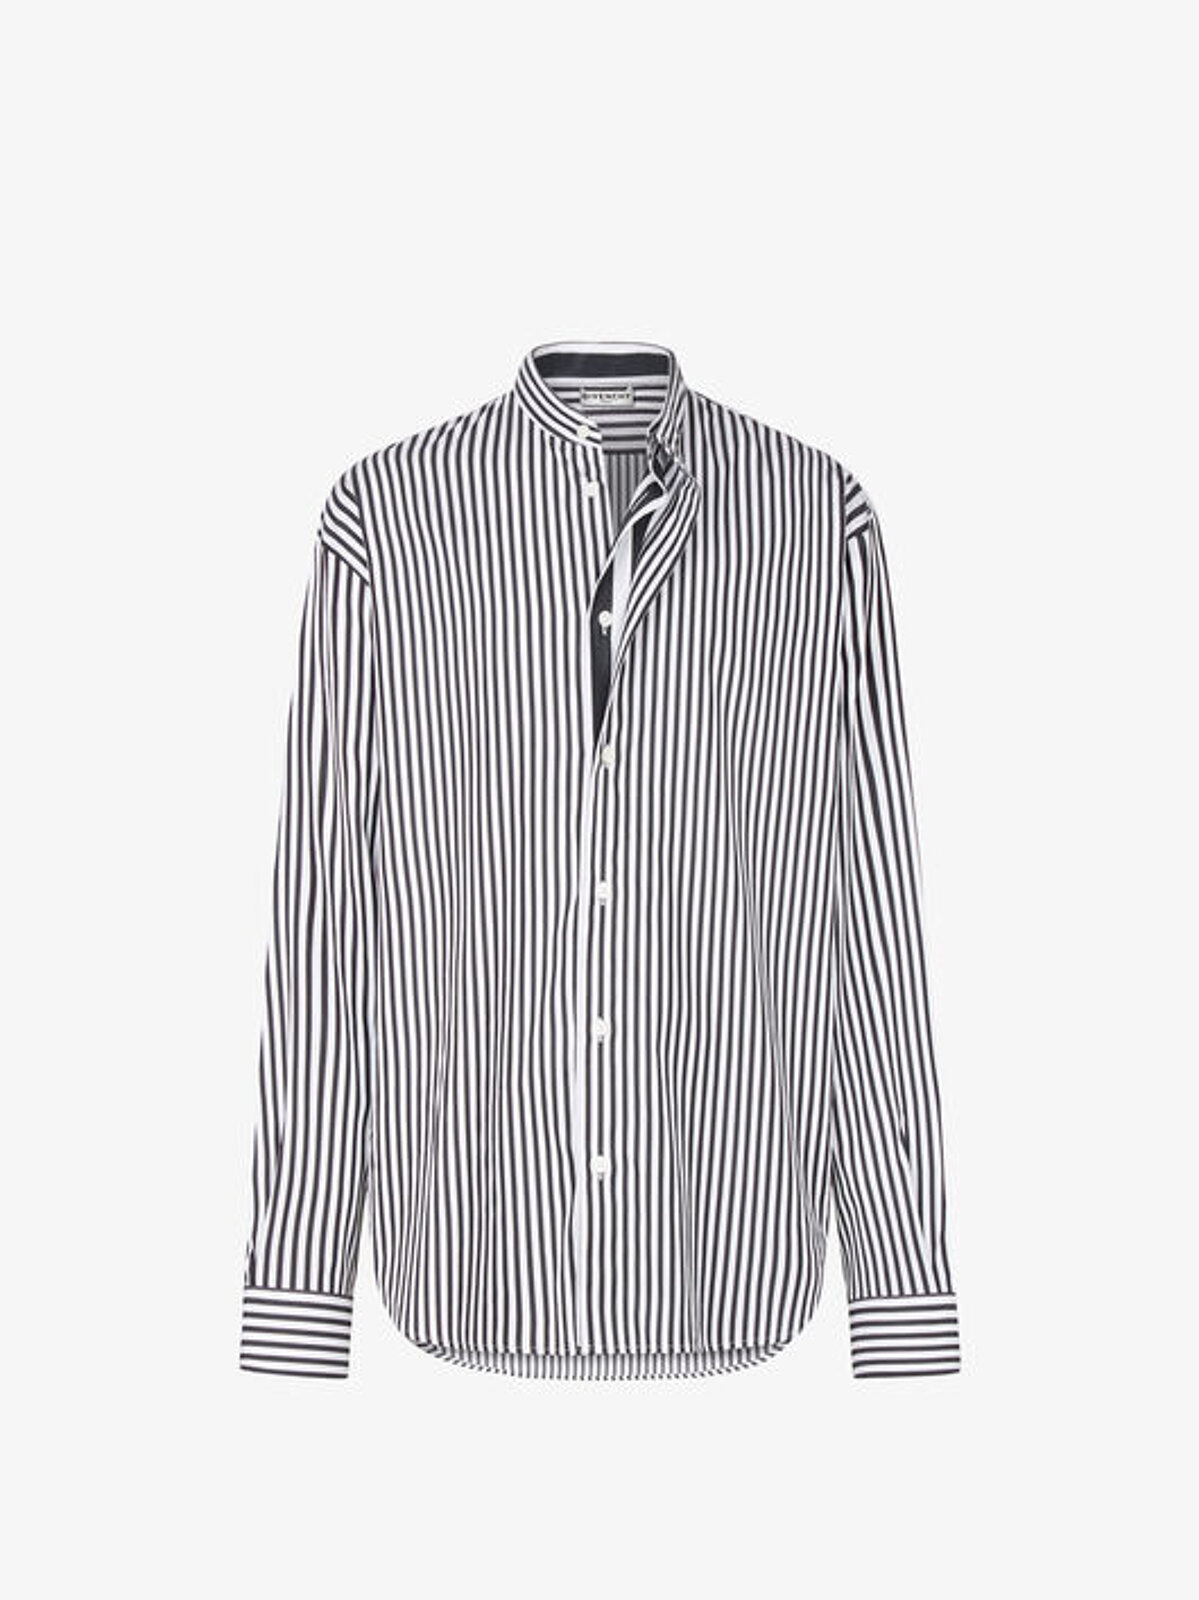 Camicia a righe con lembo sovrapposto - Givenchy